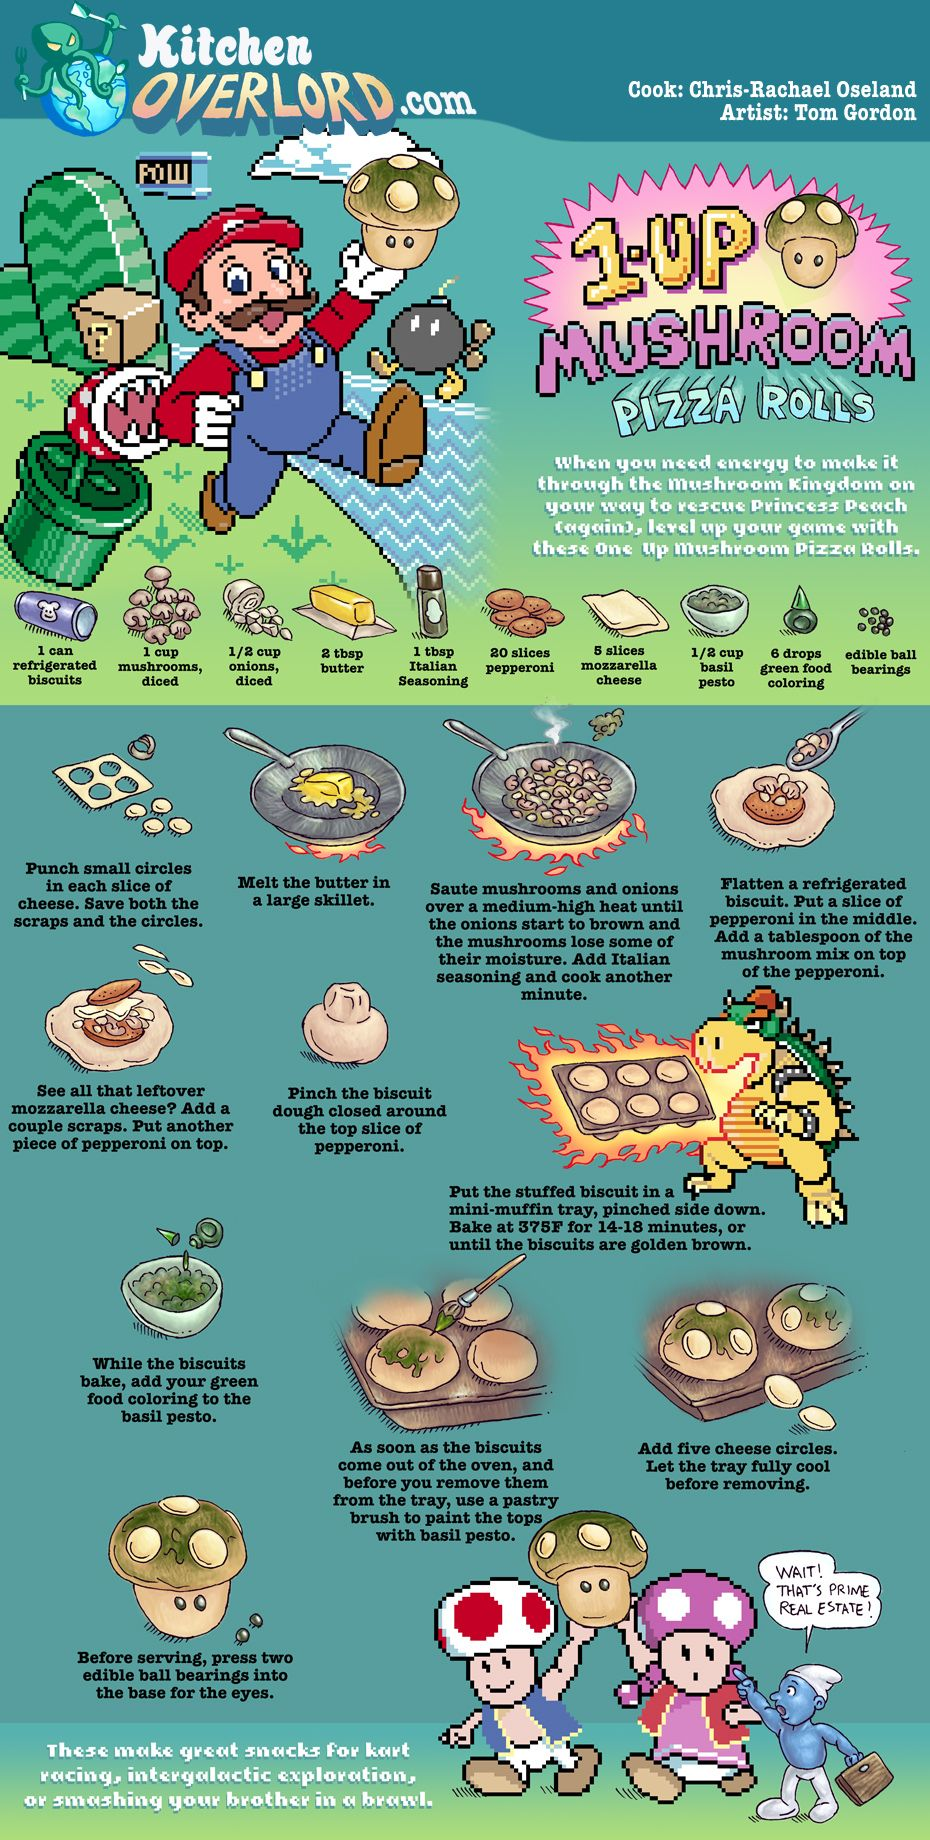 Kitchen Overlord Super Mario 1up Pizza Rolls Illustrated